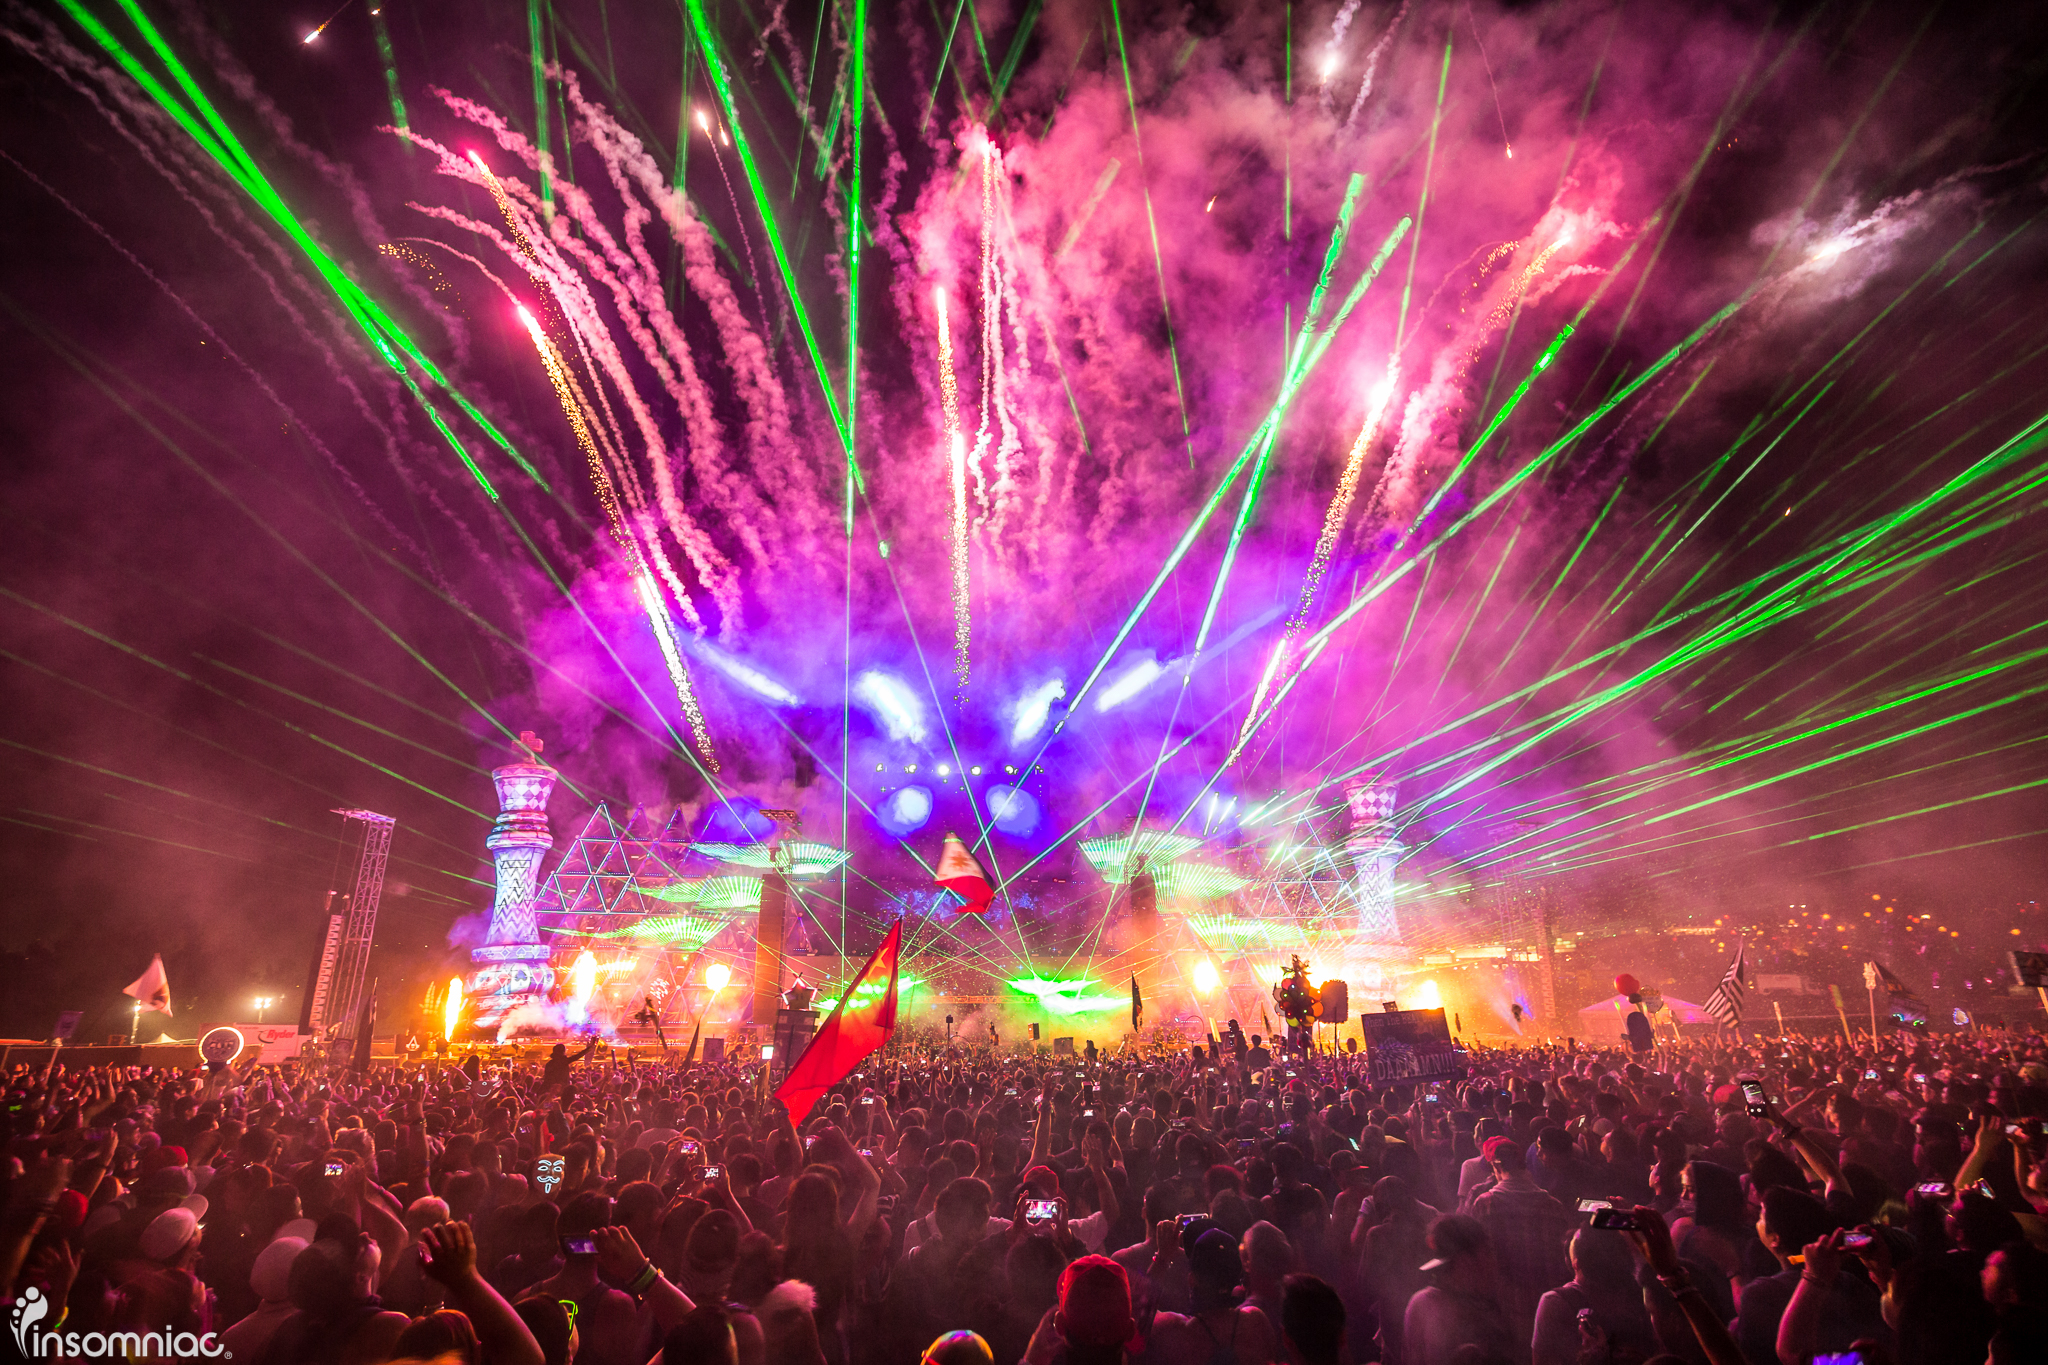 nocturnal_2015_iwally_alivecoverage-5.jpg